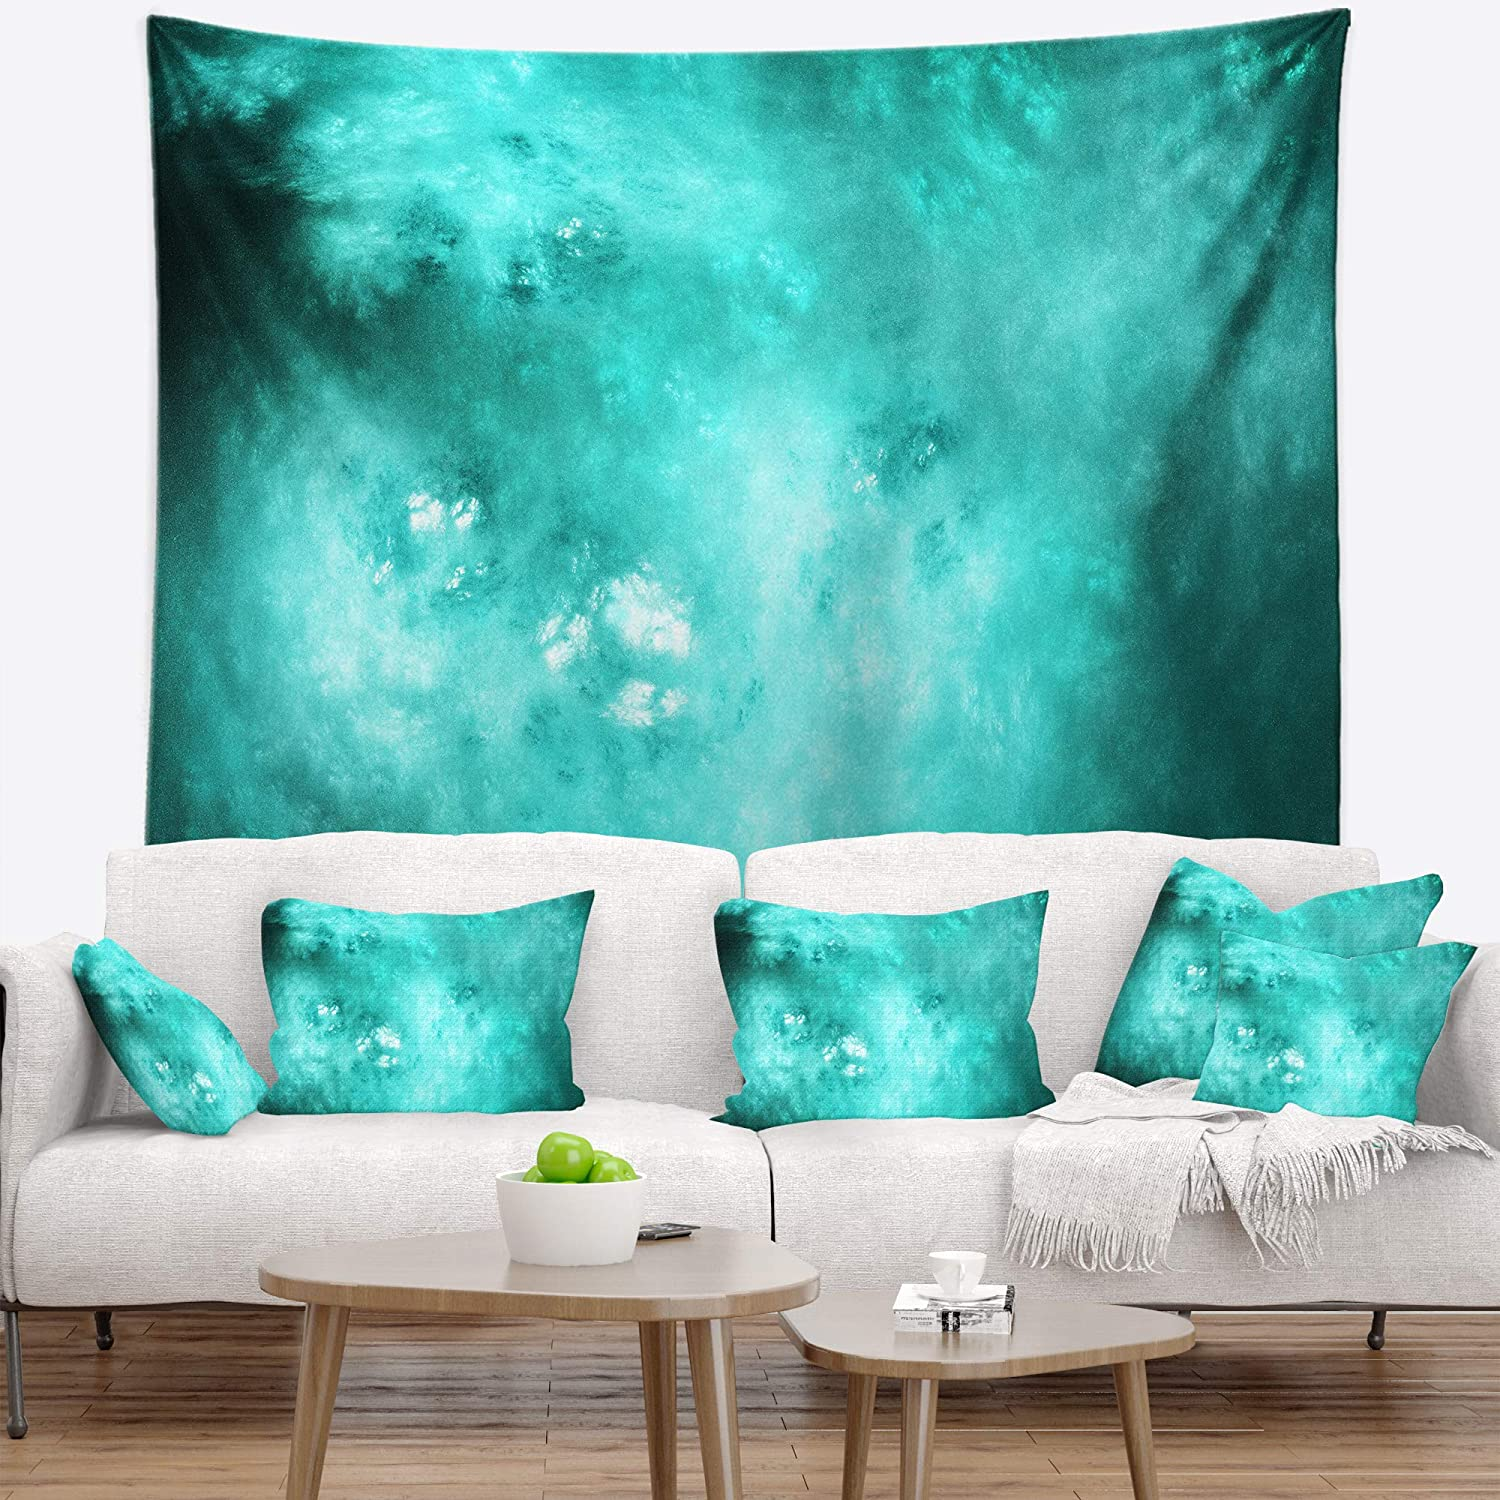 Medium x 32 in Designart TAP16384-39-32 Blur Blue Sky with Stars Abstract Blanket D/écor Art for Home and Office Wall Tapestry 39 in